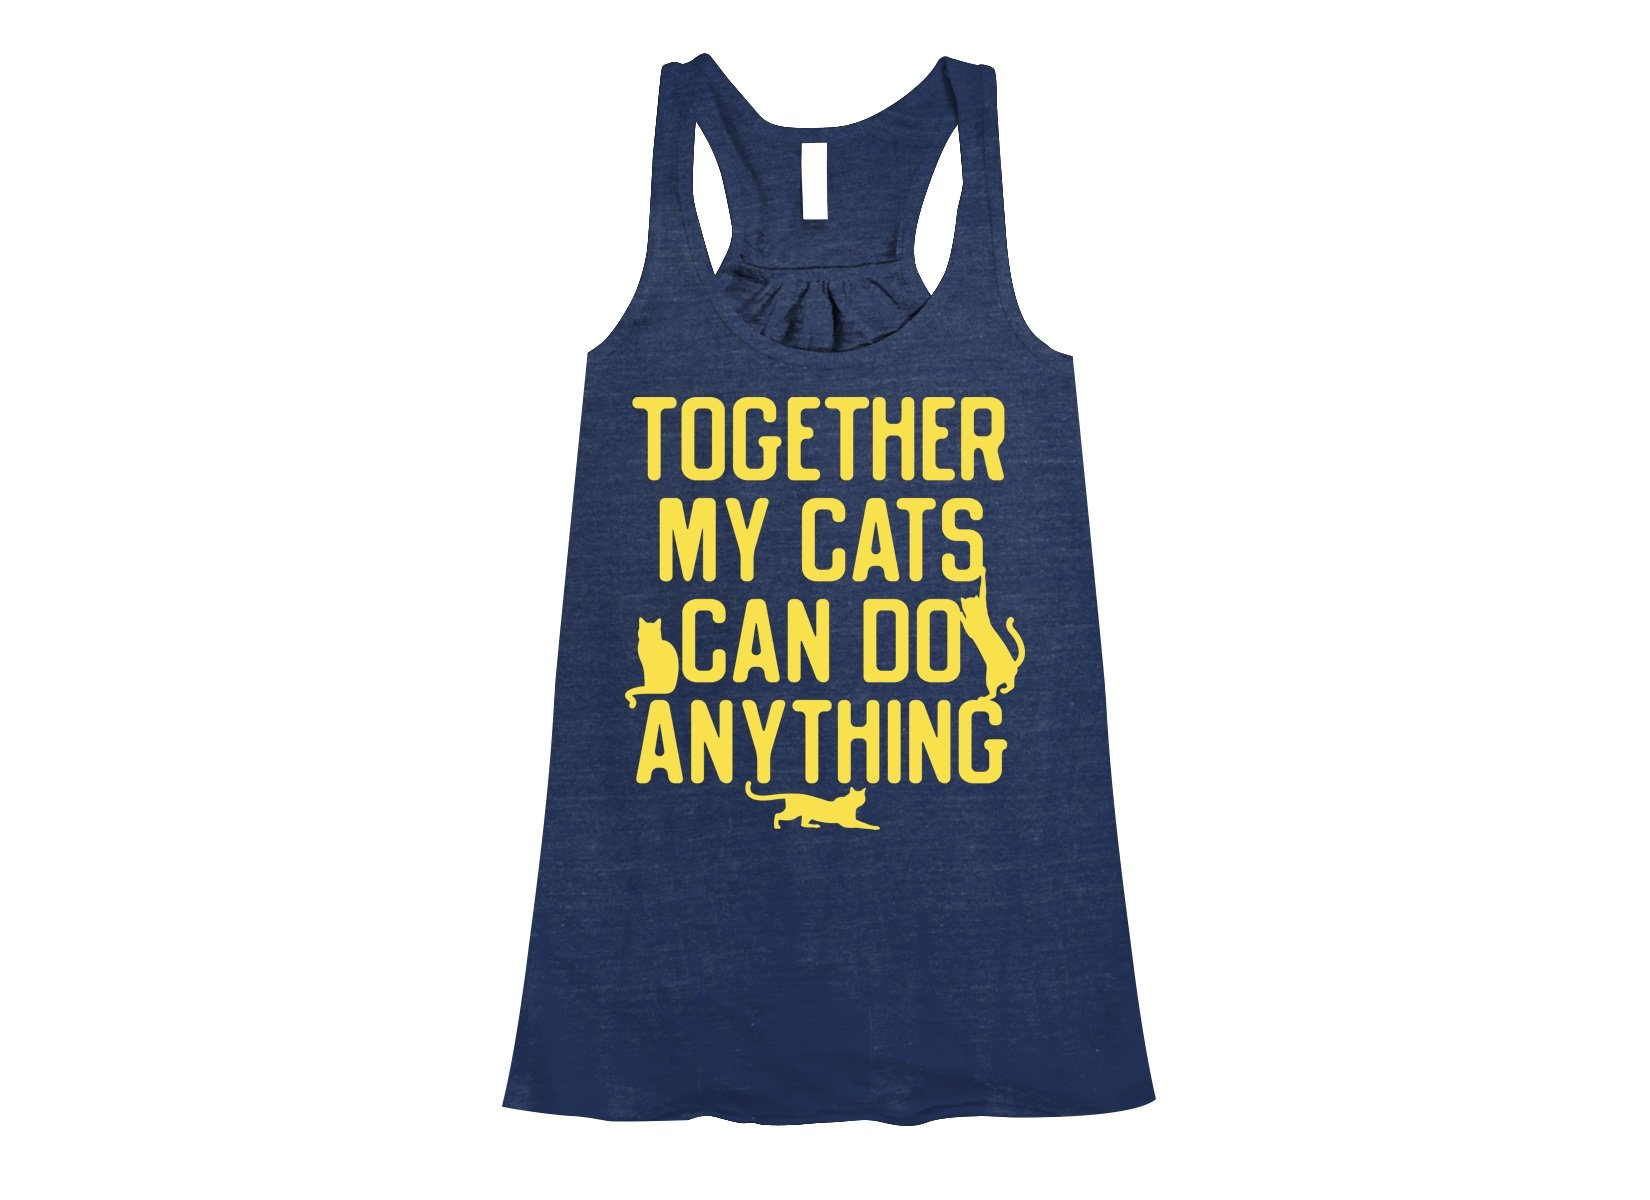 Together My Cats Can Do Anything on Womens Tanks T-Shirt